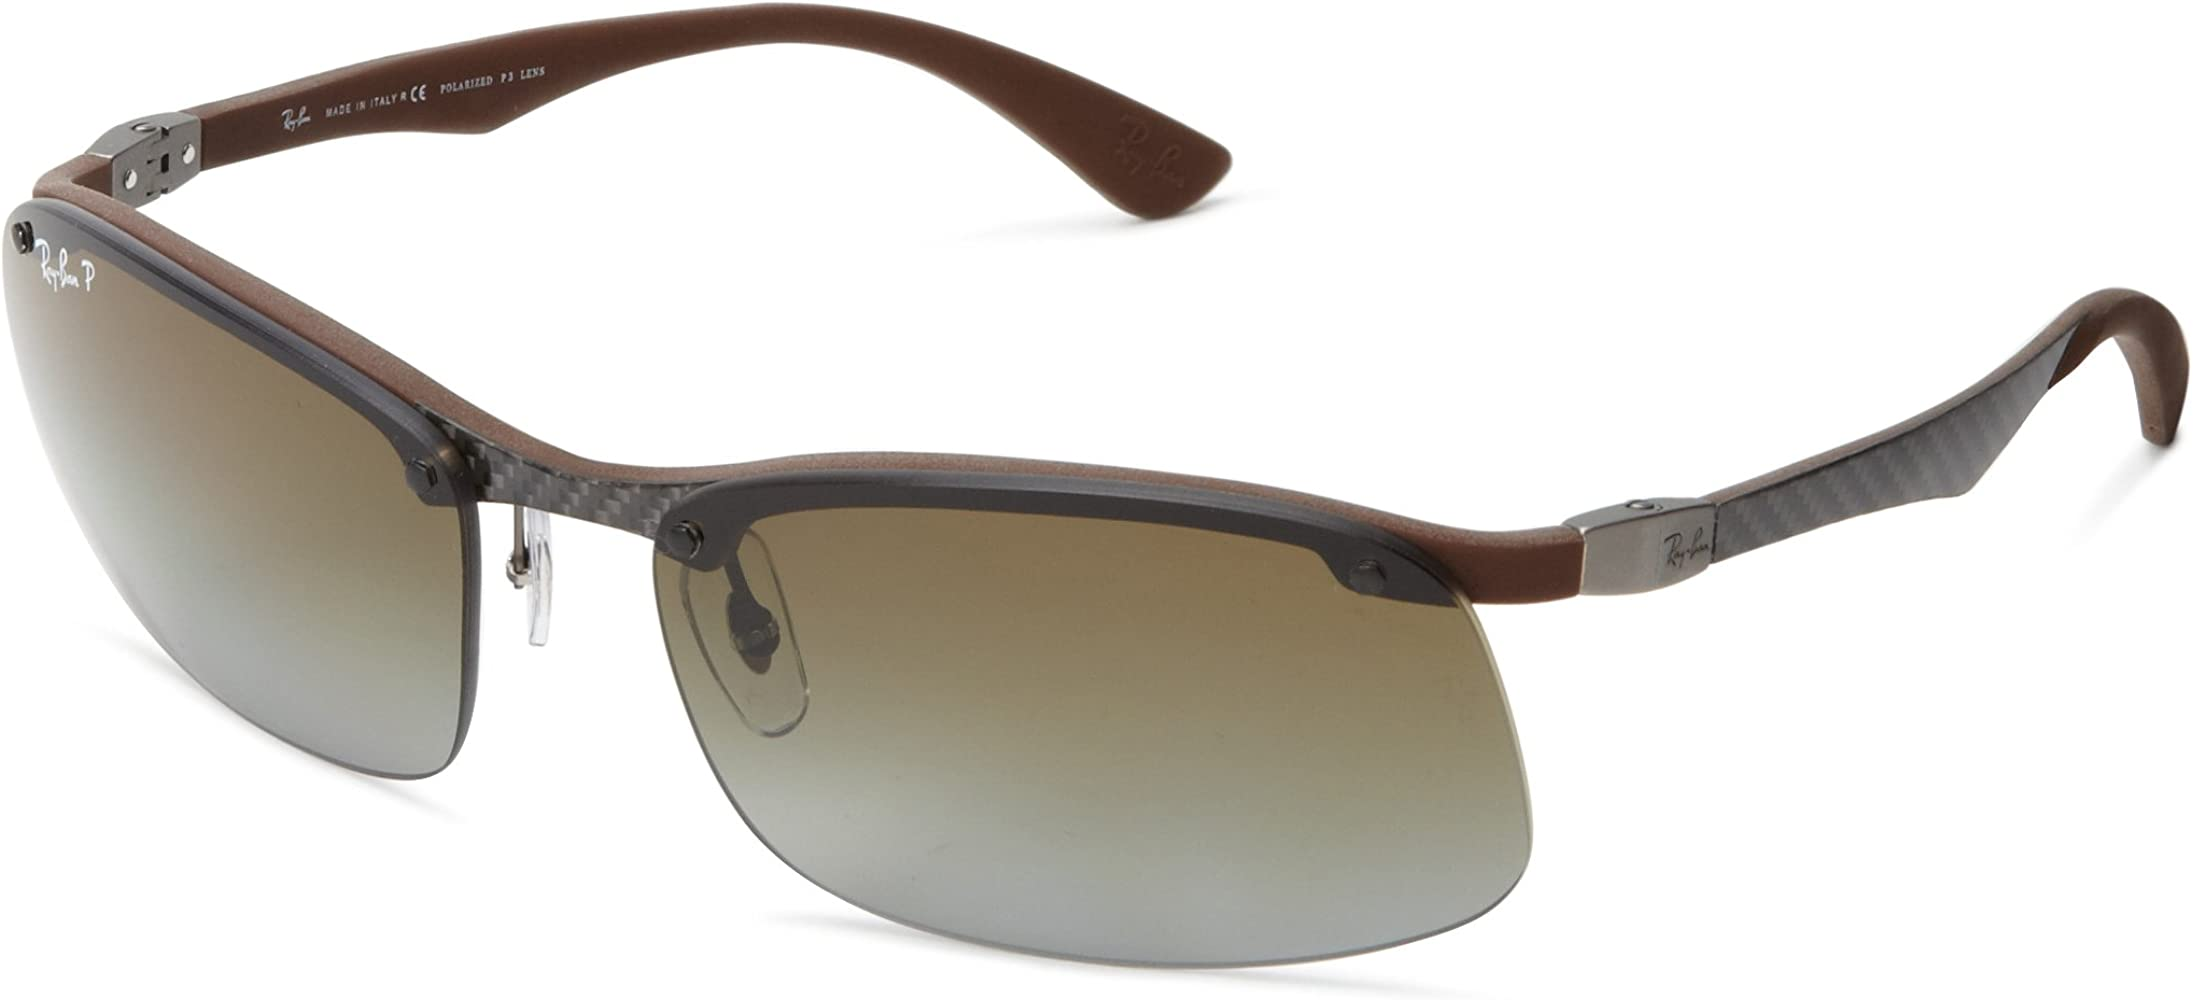 RAY BAN Gafas de sol RB 8314 128/T5 Oscuro Carbon Rubber Brown 61MM: Amazon.es: Ropa y accesorios